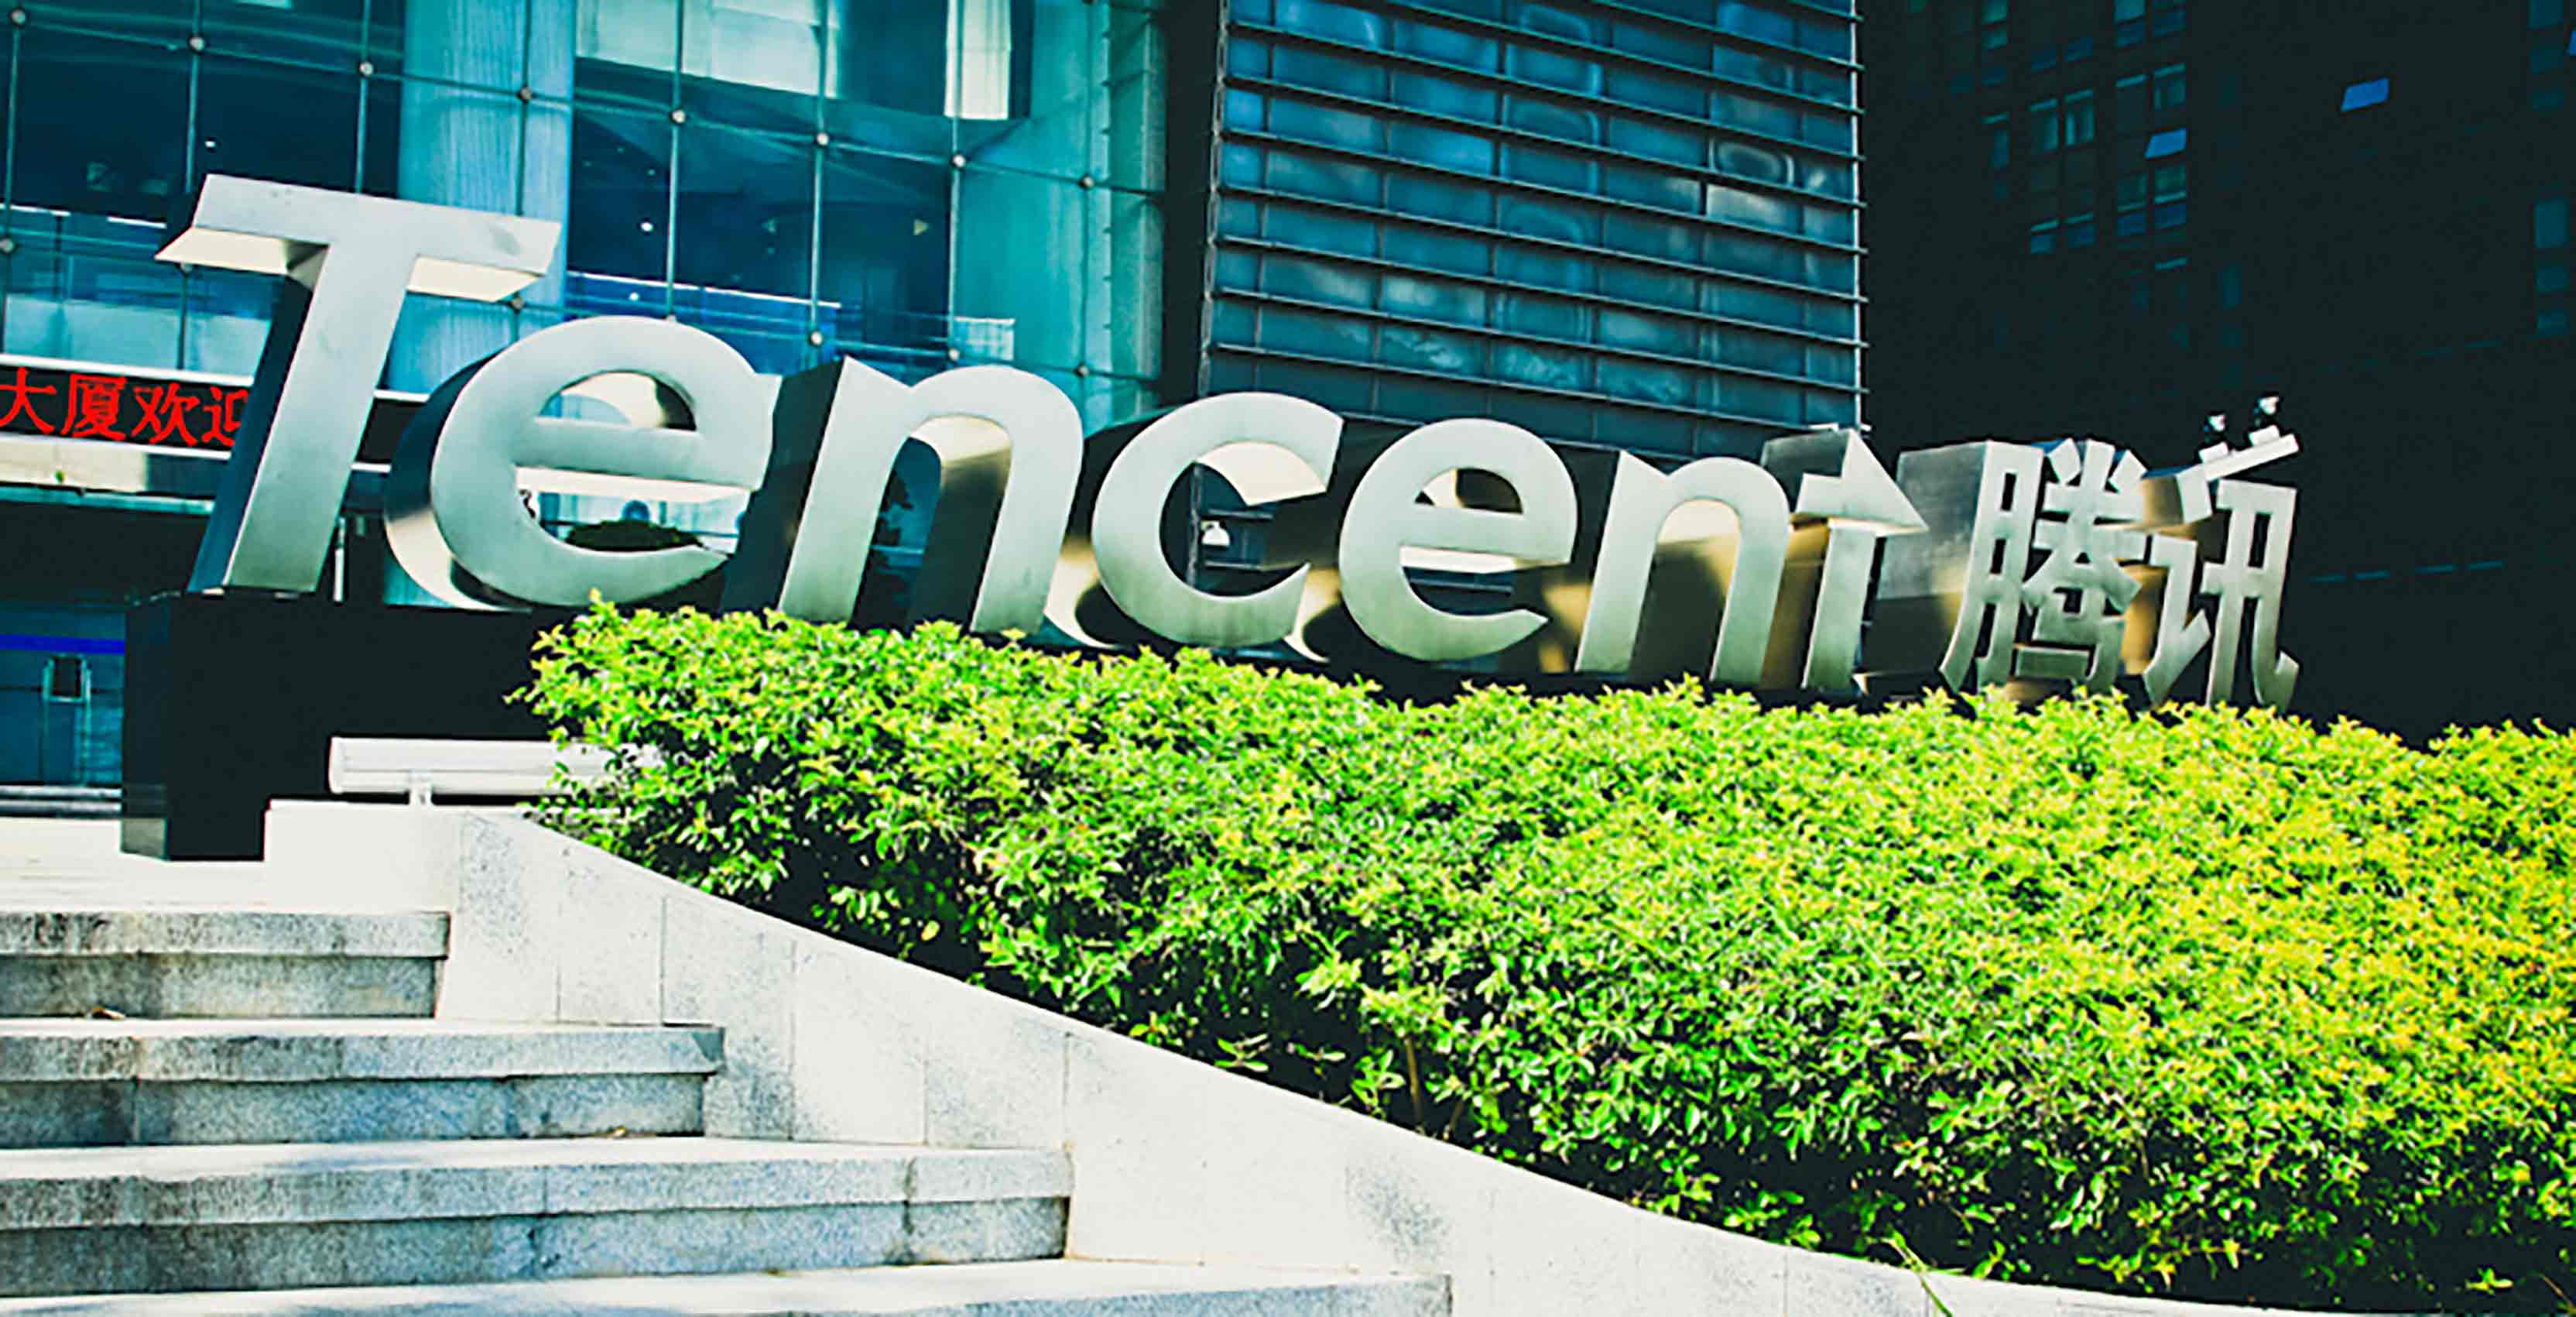 Tencent logo in China